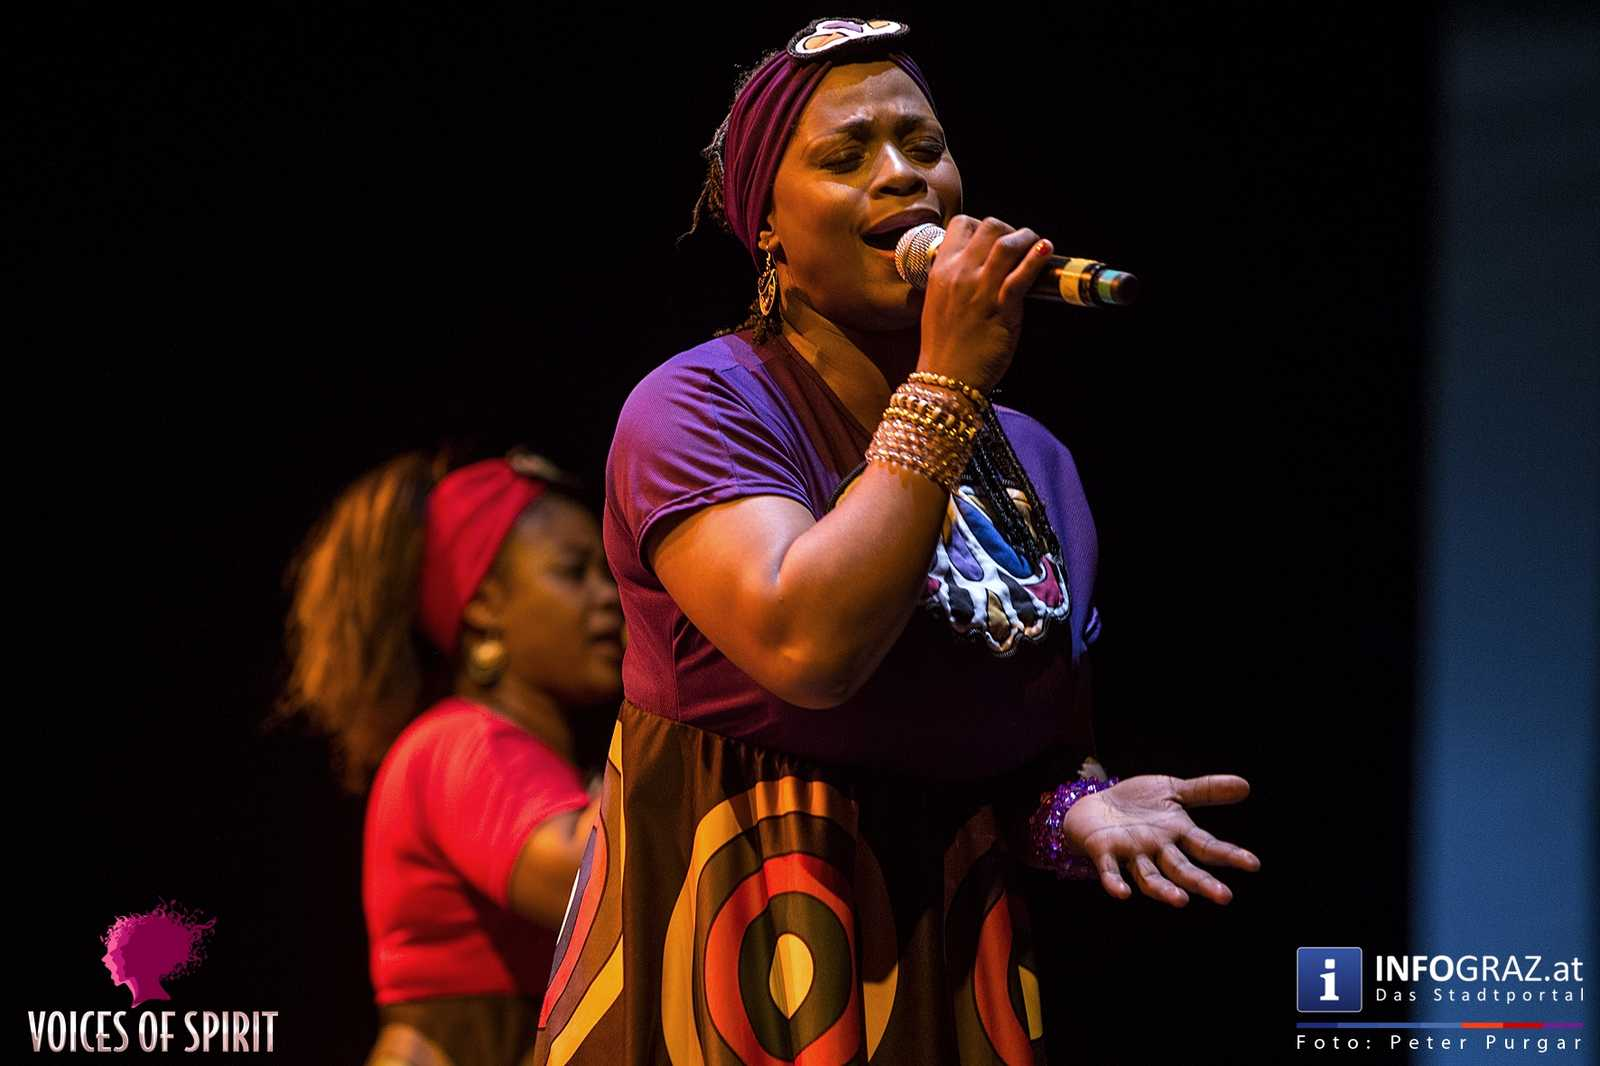 soweto gospel choir internationales chorfestival statdthalle graz voices of spirit eroeffnung festivals 2016 003